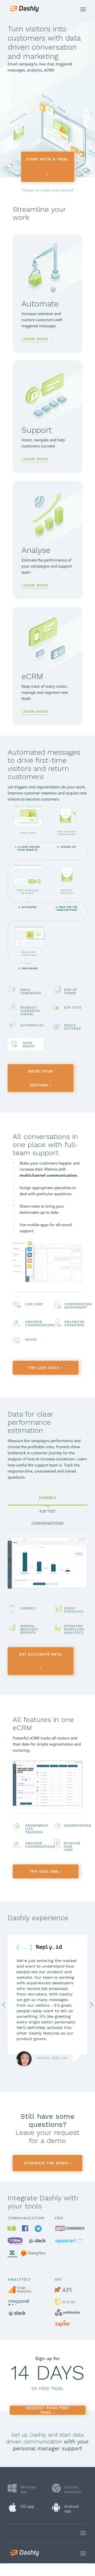 Example of Design for Computers & Electronics, Enterprise Technology, Mobile Landing Page by dashly.app   Mobile Landing Page Design